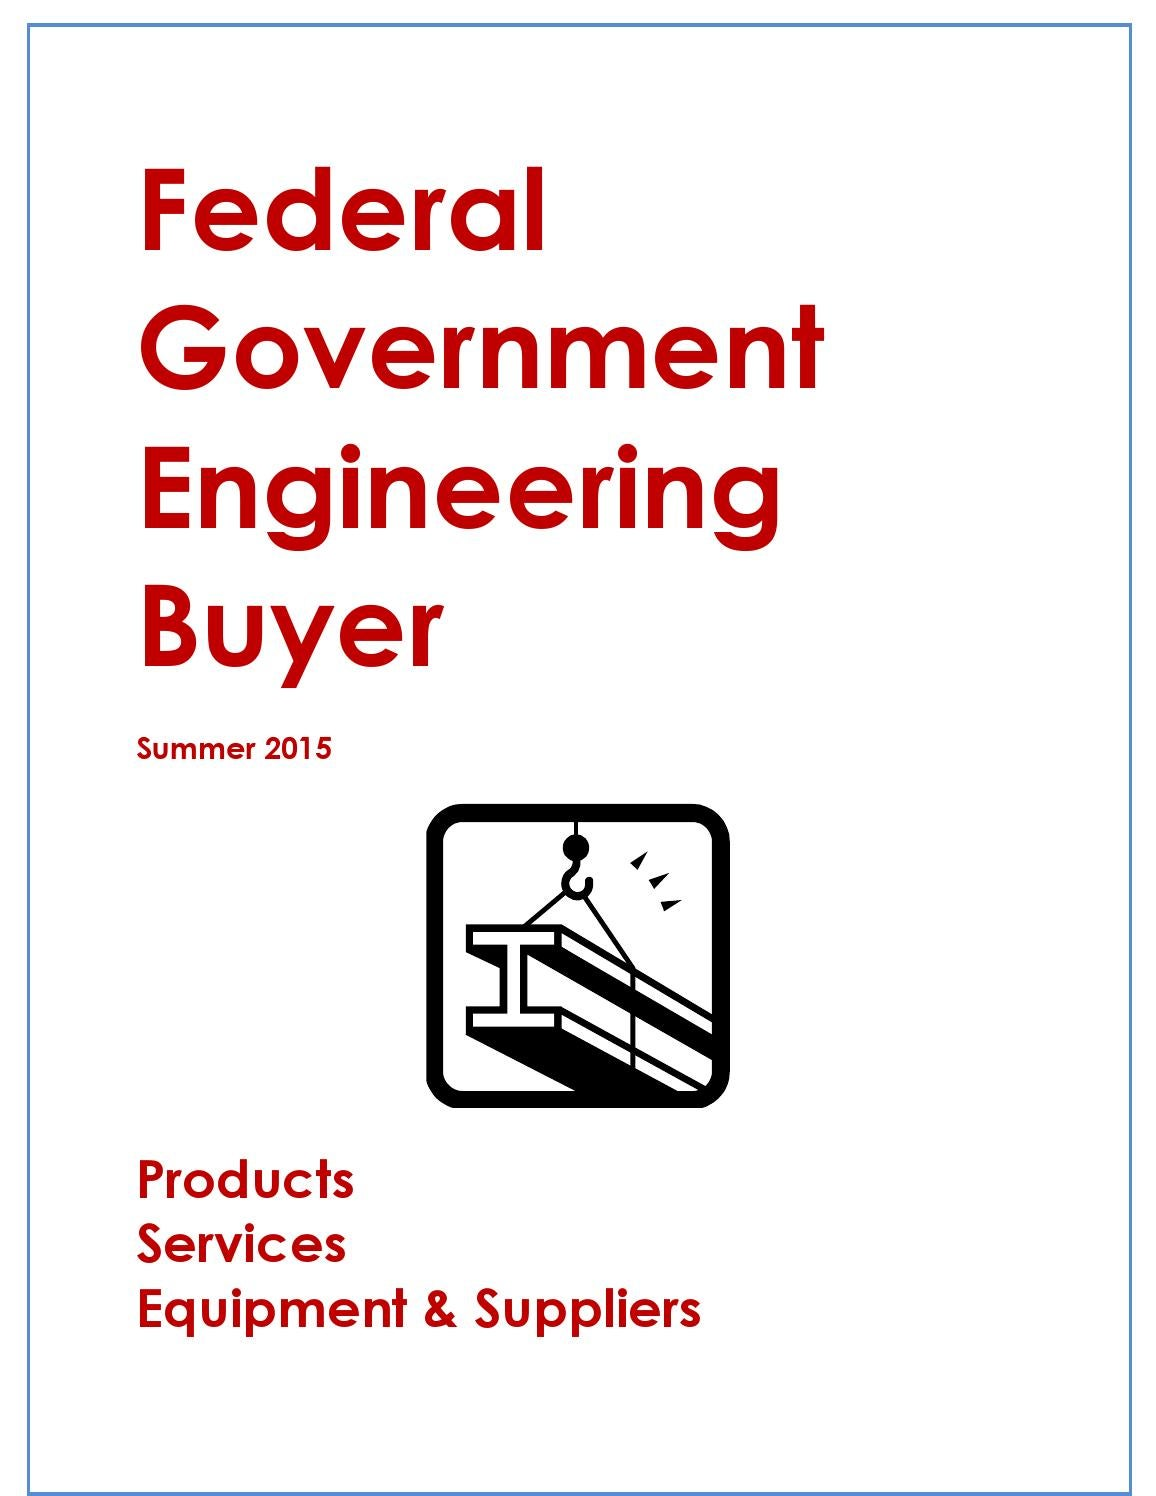 Federal Government Engineering Buyer by Federal Buyers Guide, inc. - issuu